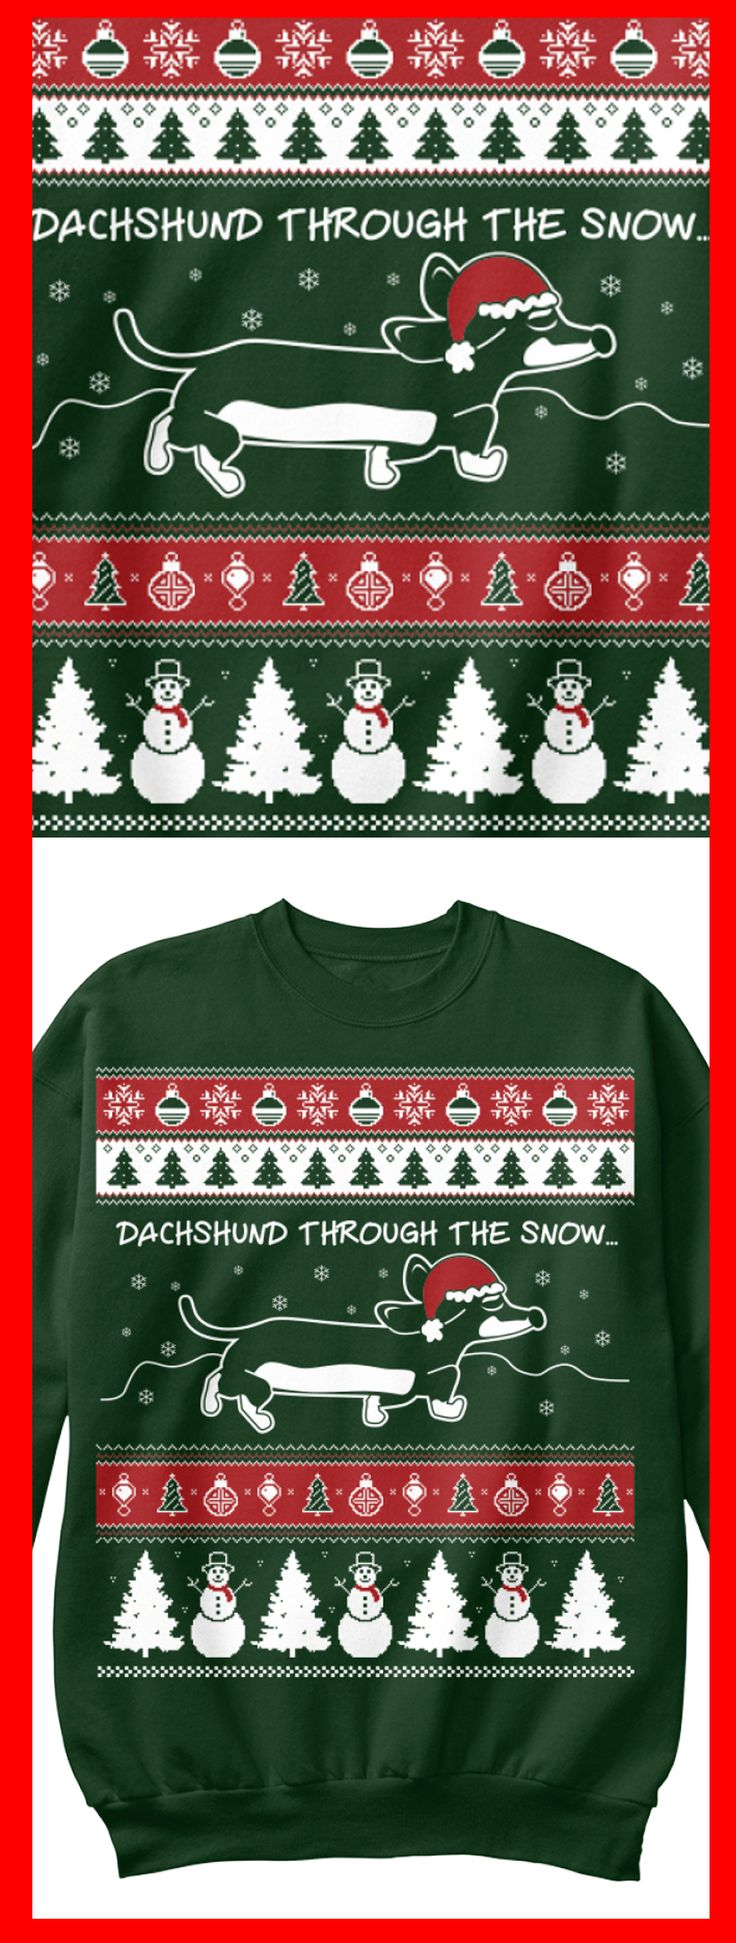 """""""Dachshund Through The Snow"""" Christmas Sweatshirt available now.  Click image to get a better view of the sweater.  Printed on a real sweatshirt not a cheap long sleeved shirt this will bring joy to any Dachshund owner."""